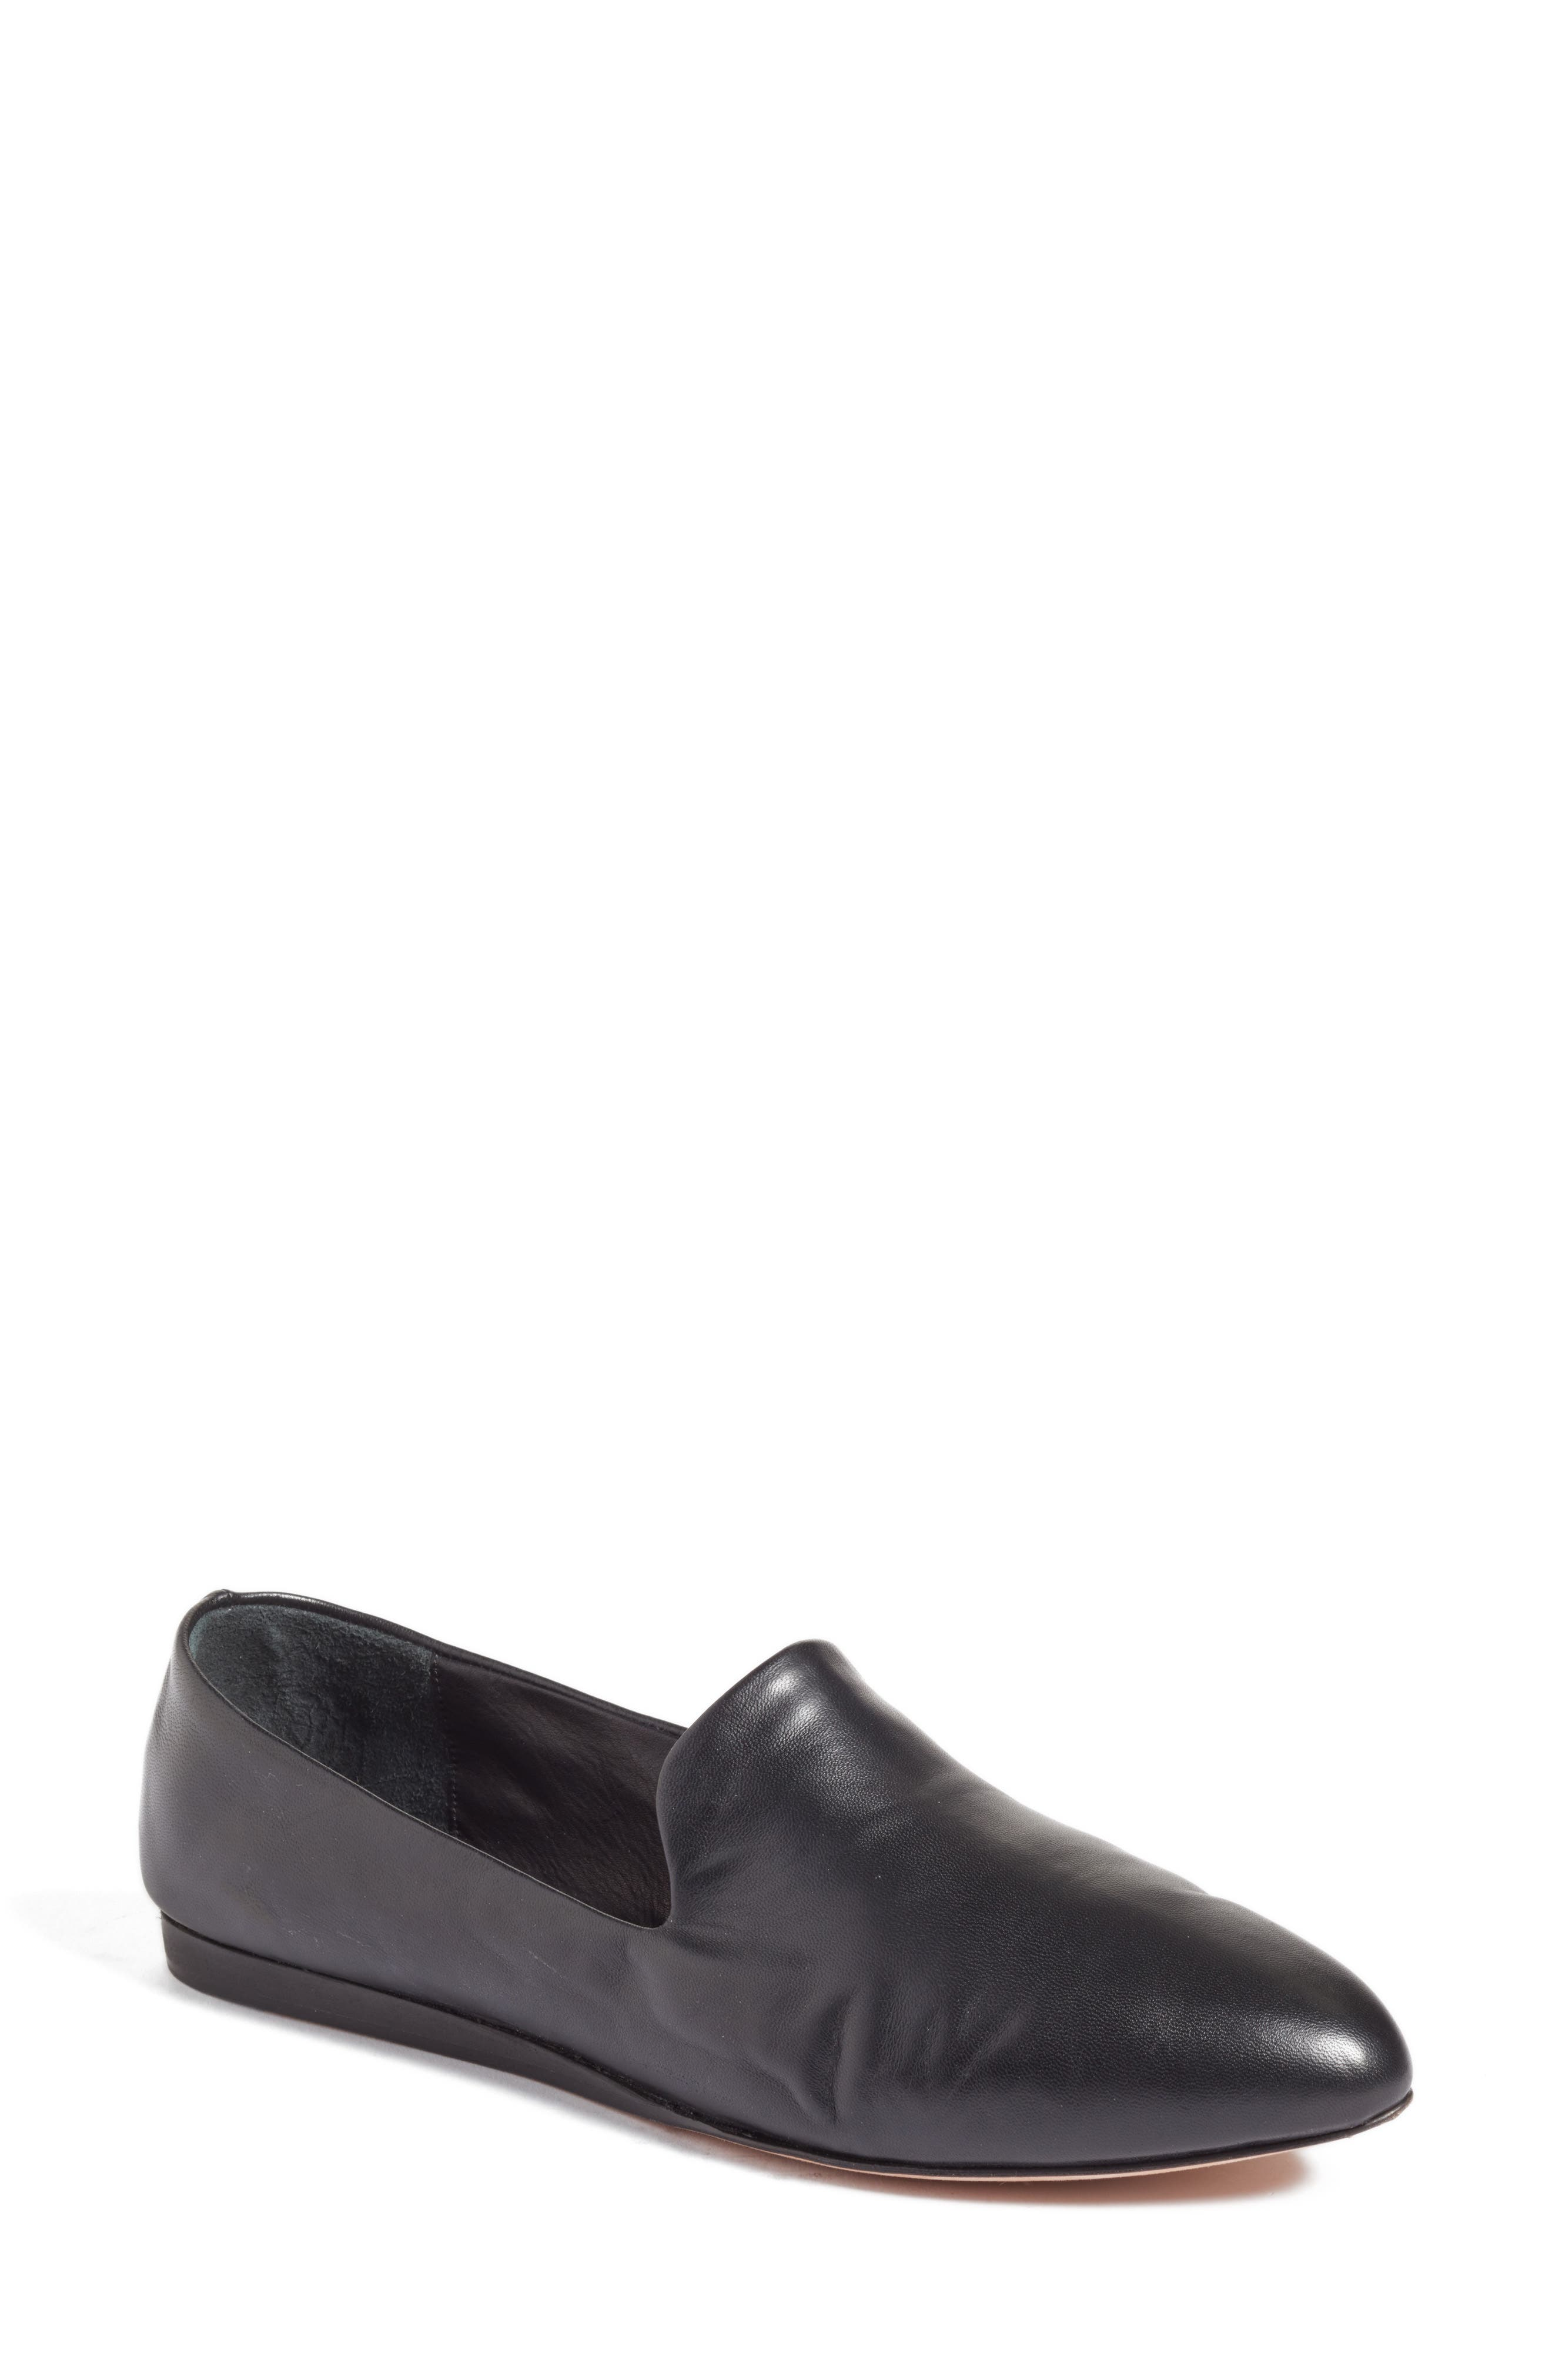 Veronica Beard Griffin Pointy Toe Loafer, Black